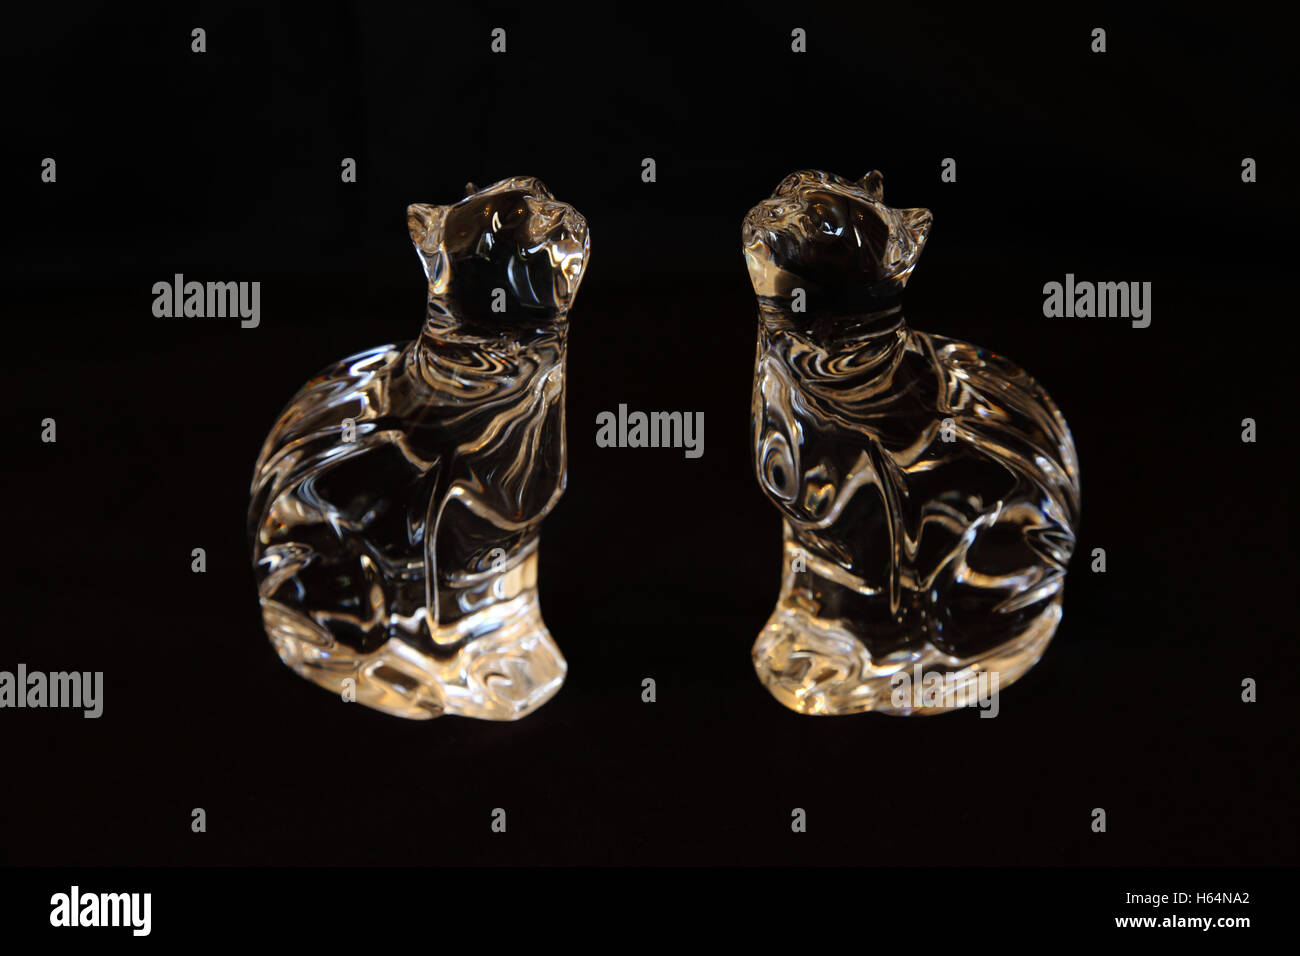 Two Waterford Crystal glass figurines of cats against a black background. Glass ornaments - Stock Image